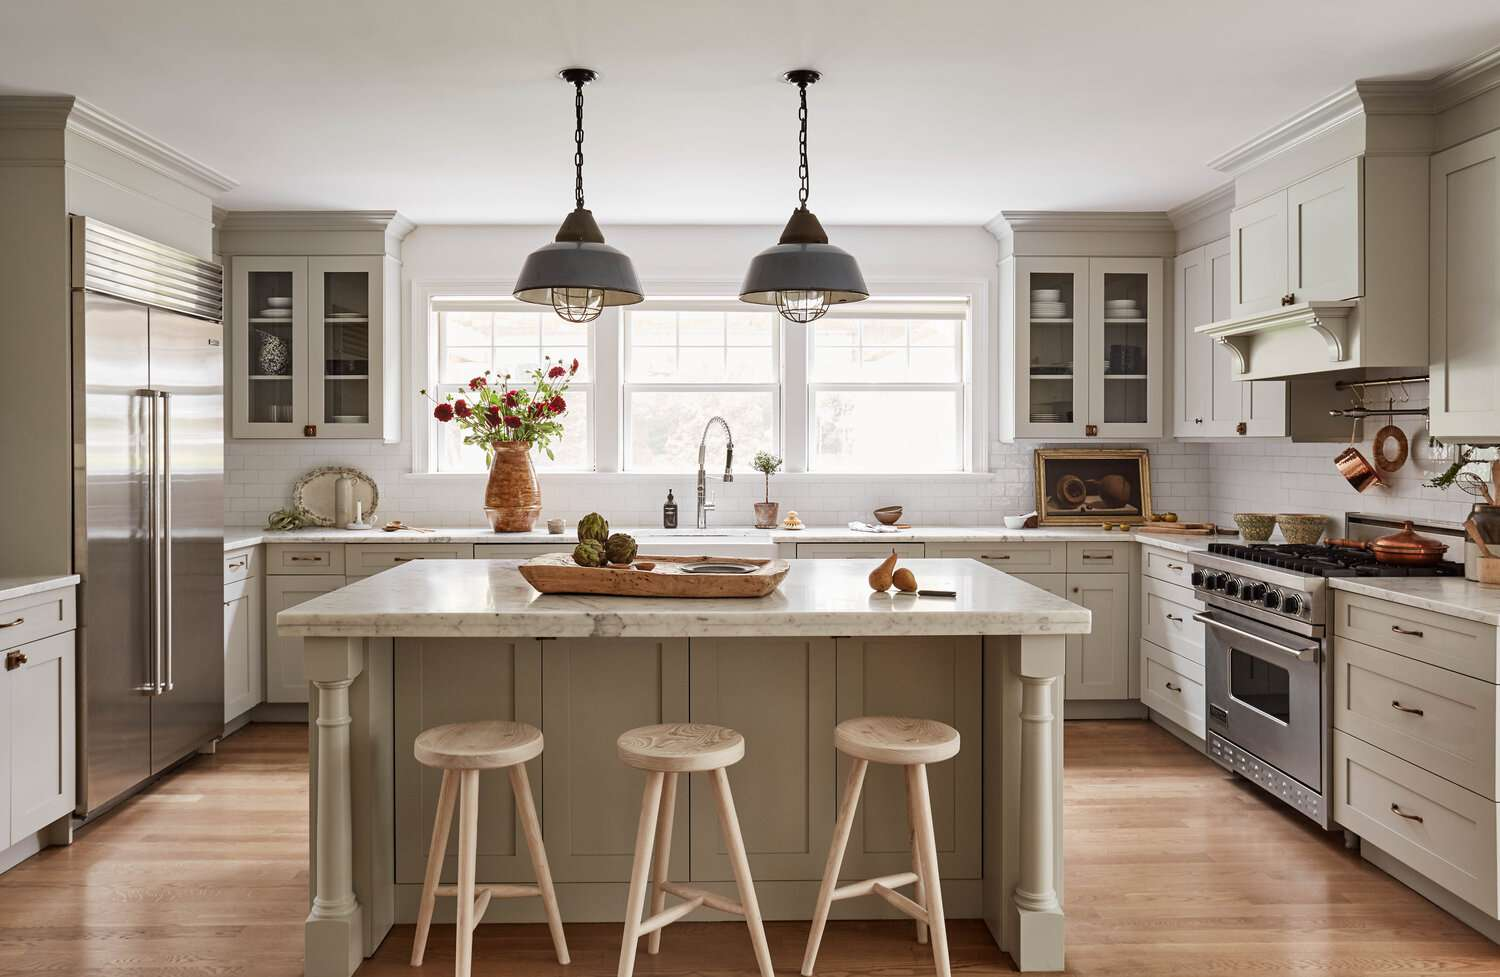 A rustic kitchen with mint green cabinets and farmhouse lighting fixtures